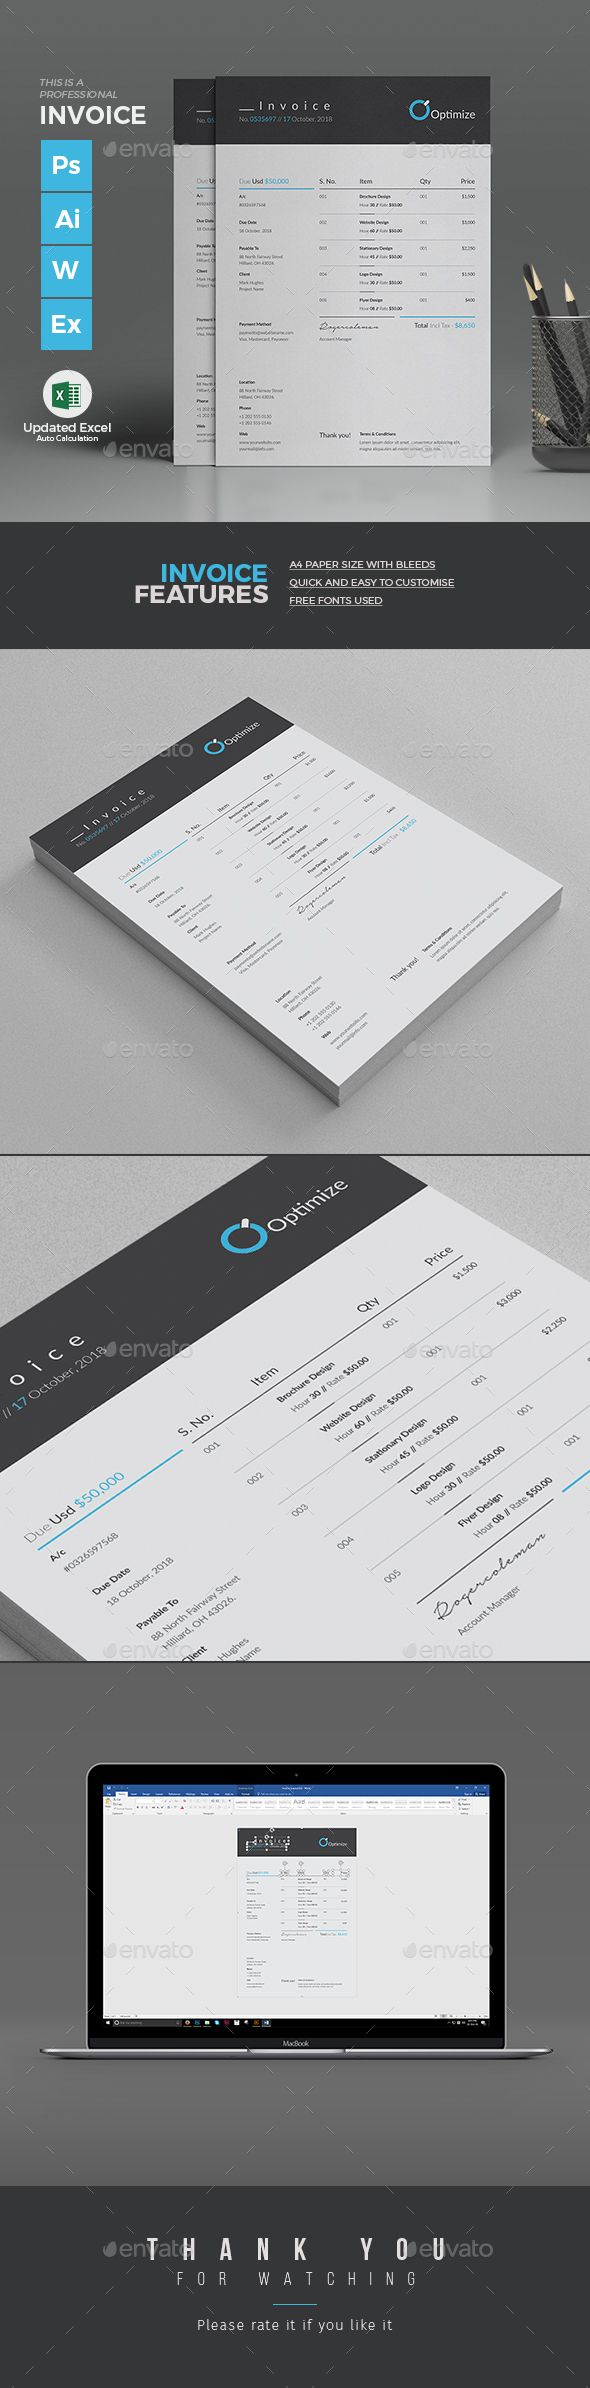 Clean / Corporate #Invoice #Excel Template with super modern and professional look. Elegant page designs are easy to use and customize, so you can quickly tailor-make your company invoice or personal invoice. Download here: https://graphicriver.net/item/invoice/18516303?ref=classicdesignp